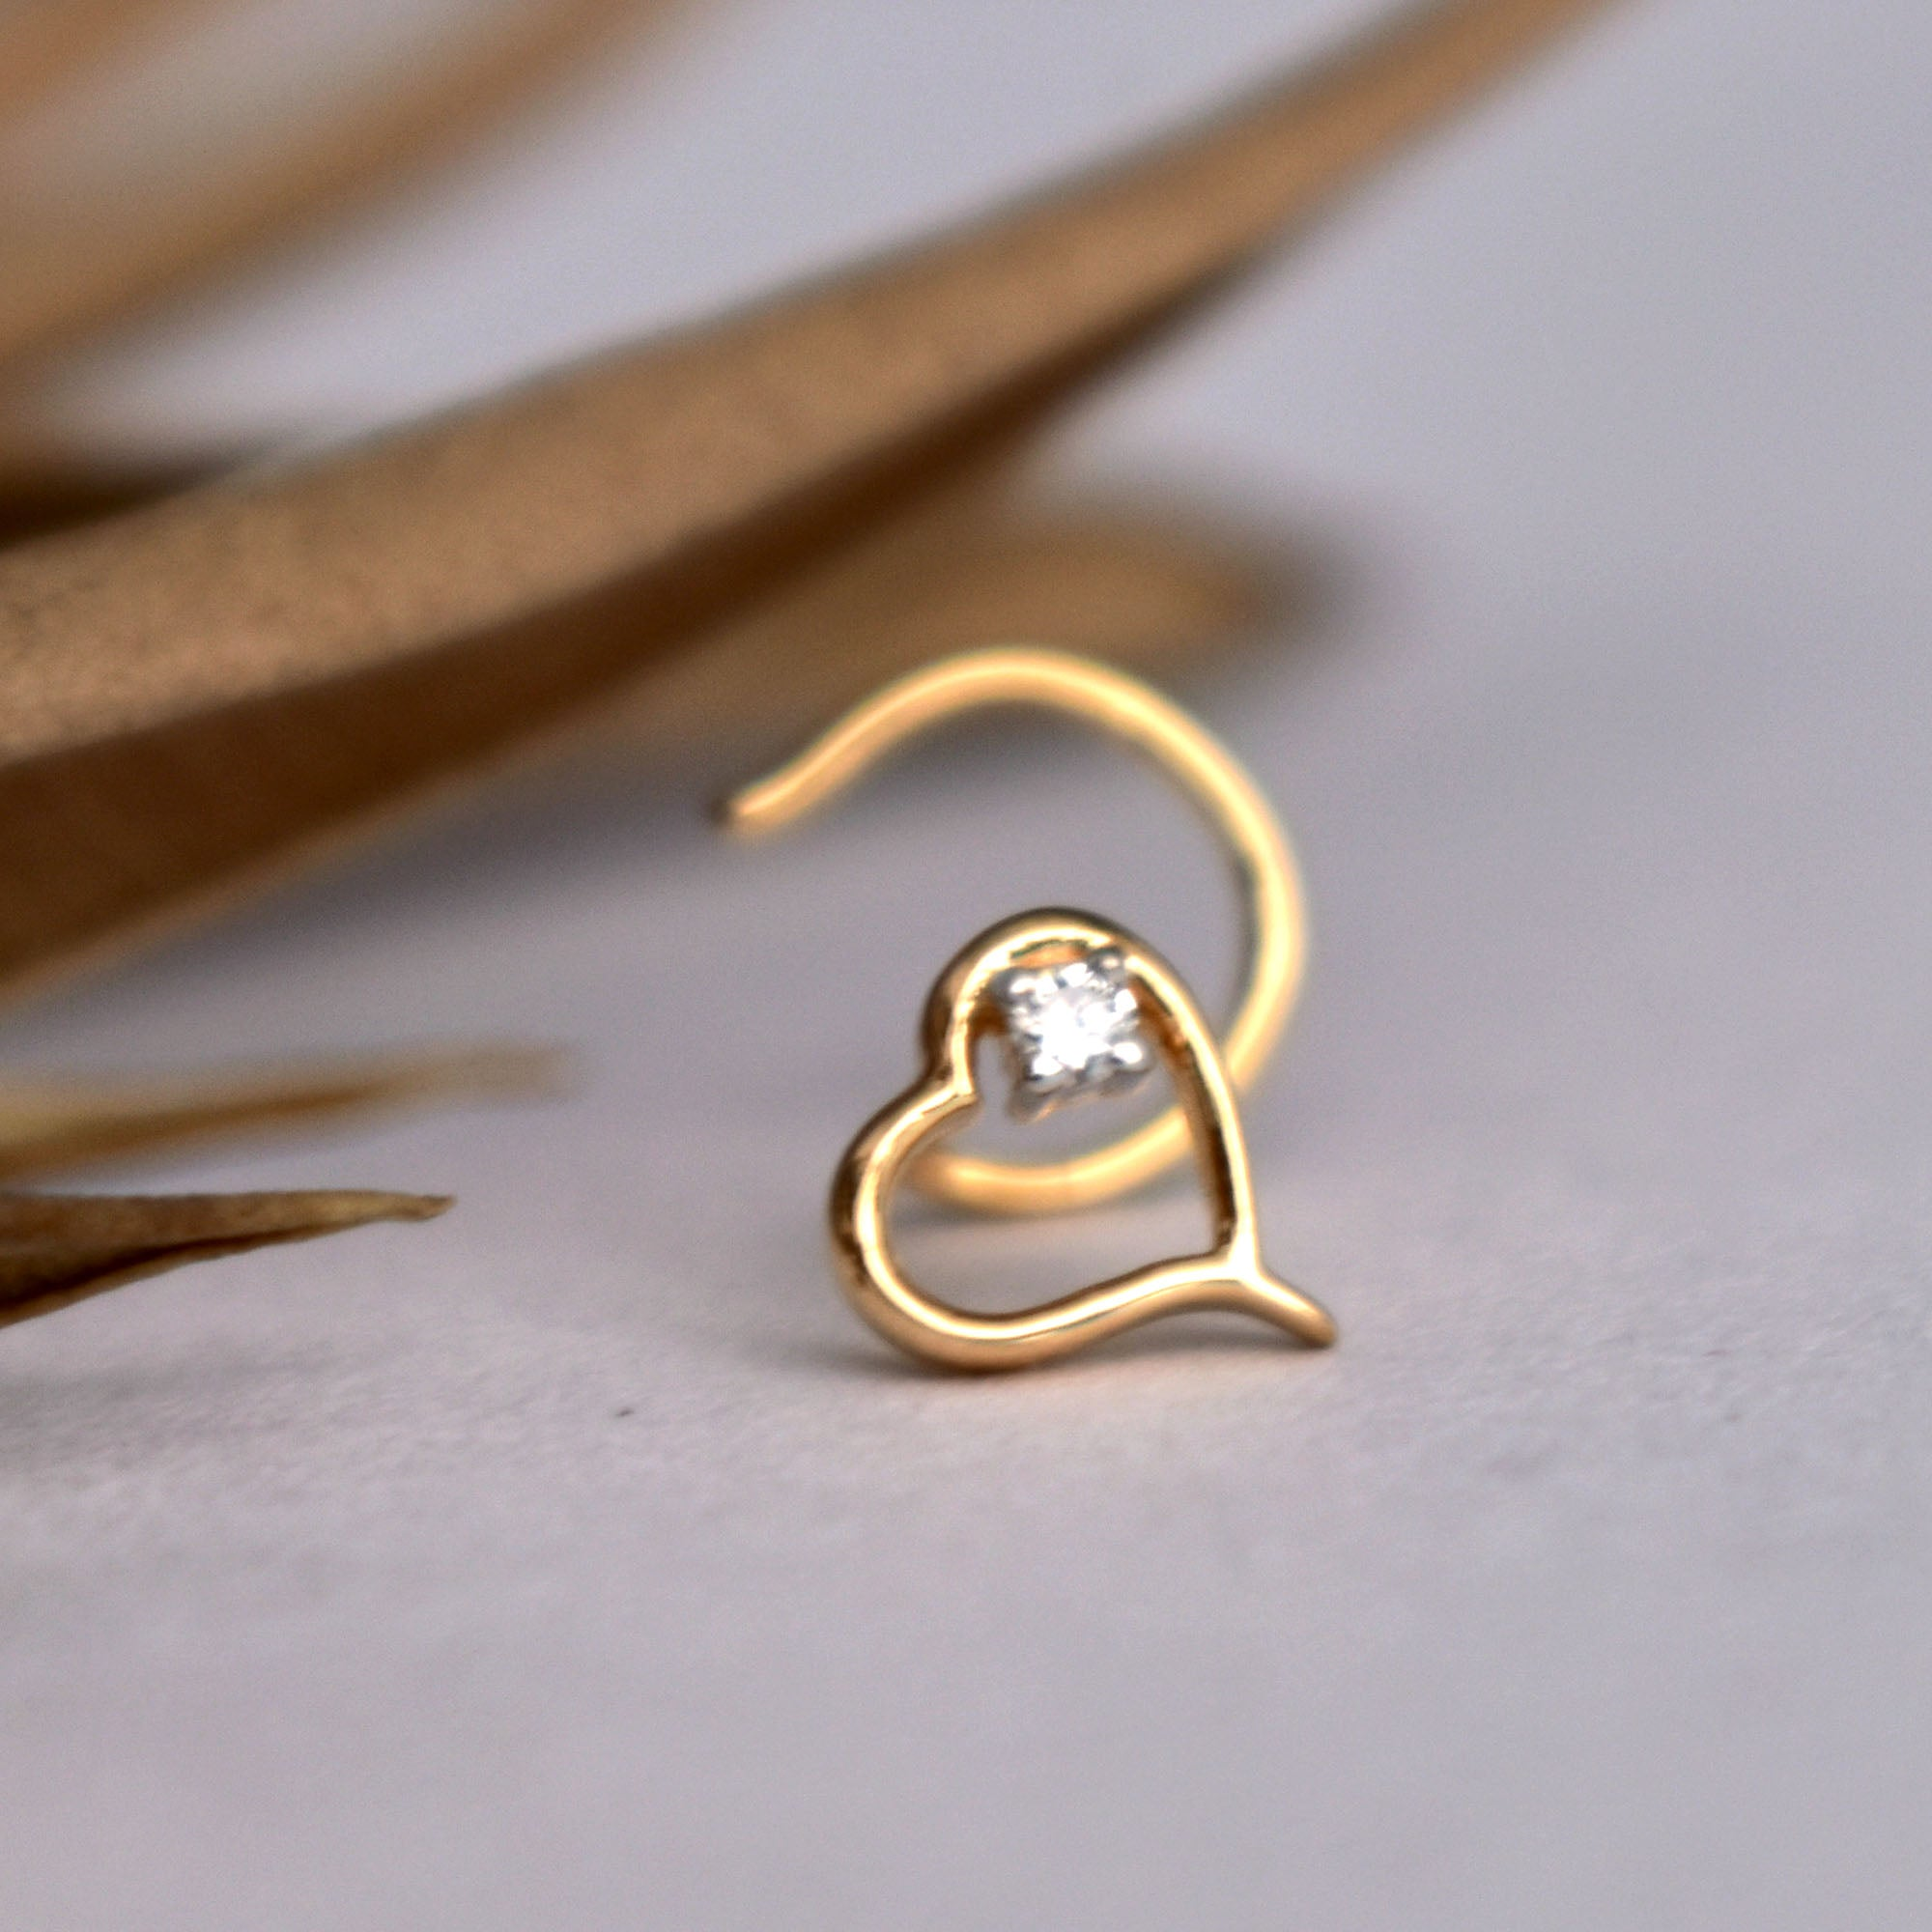 Details about  /Piercing Nose Gold 14K With Gem Heart